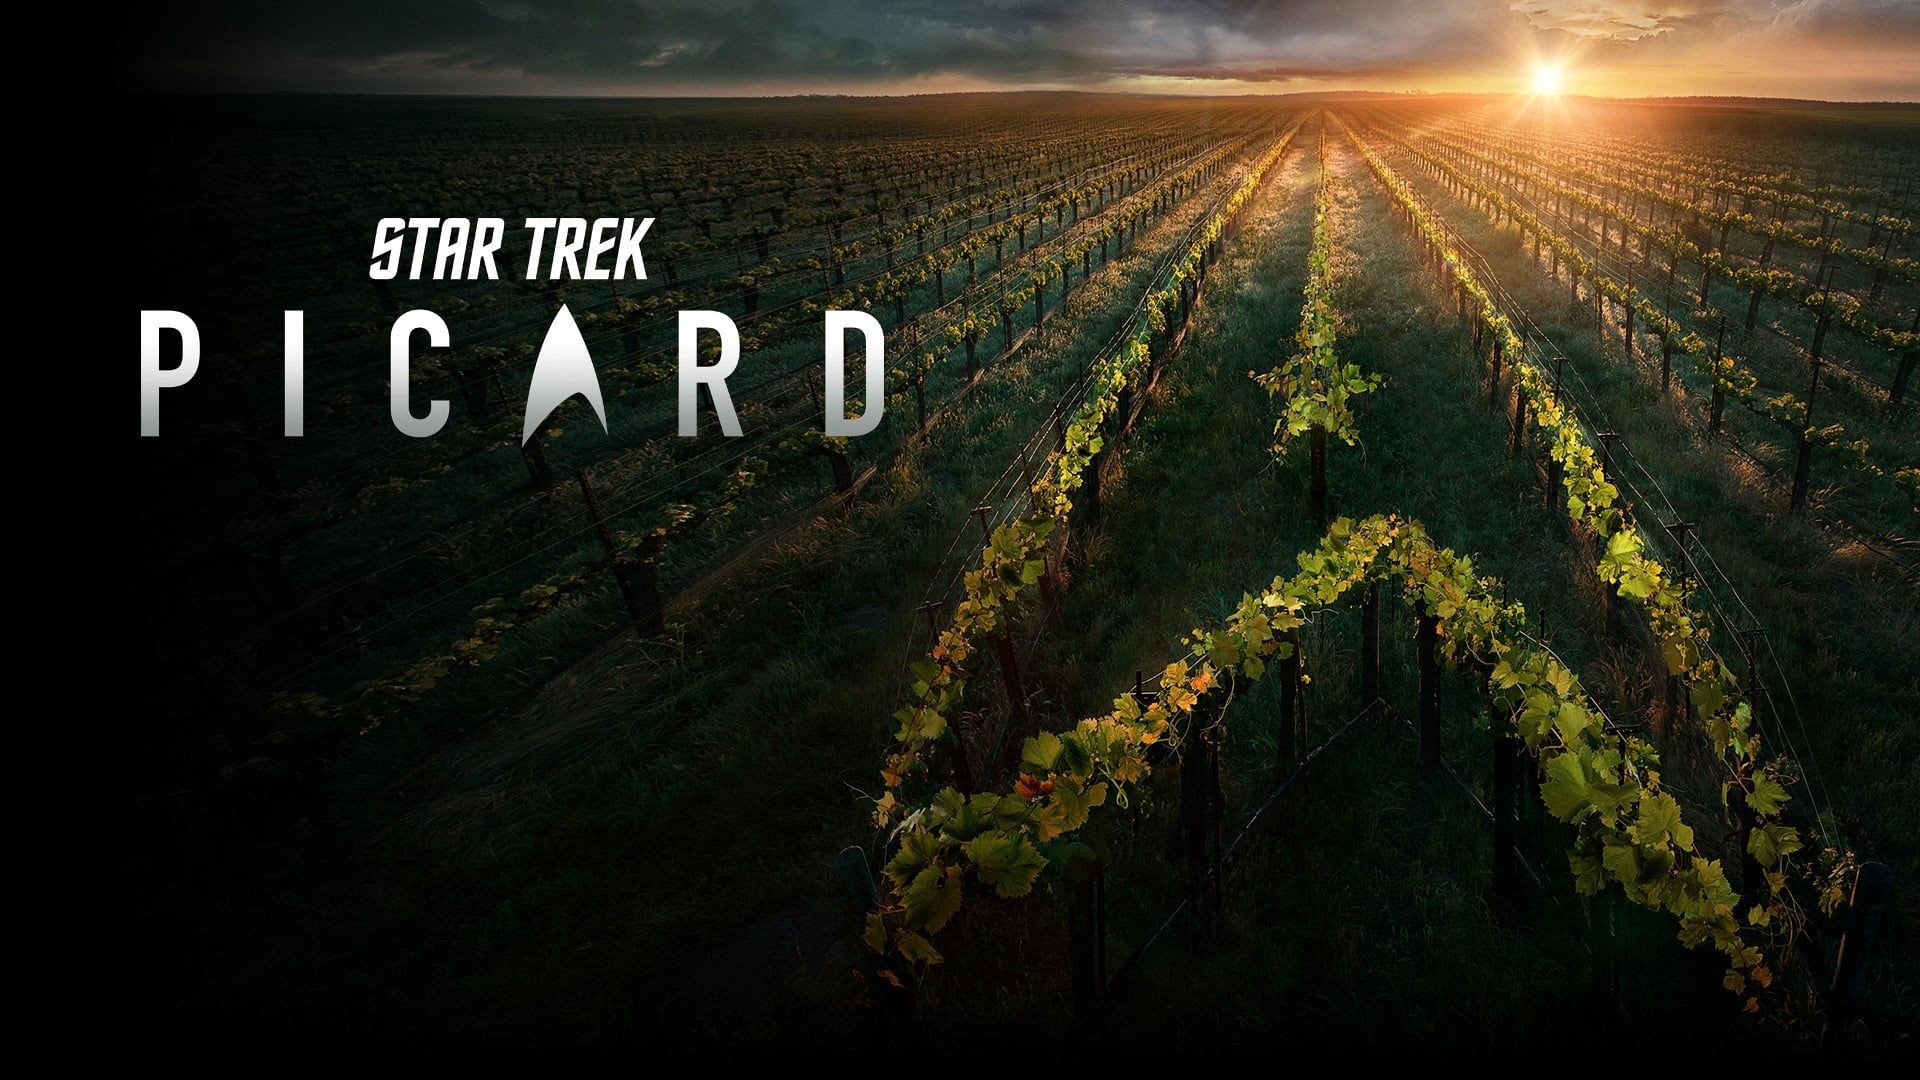 Star Trek: Picard - Season 1